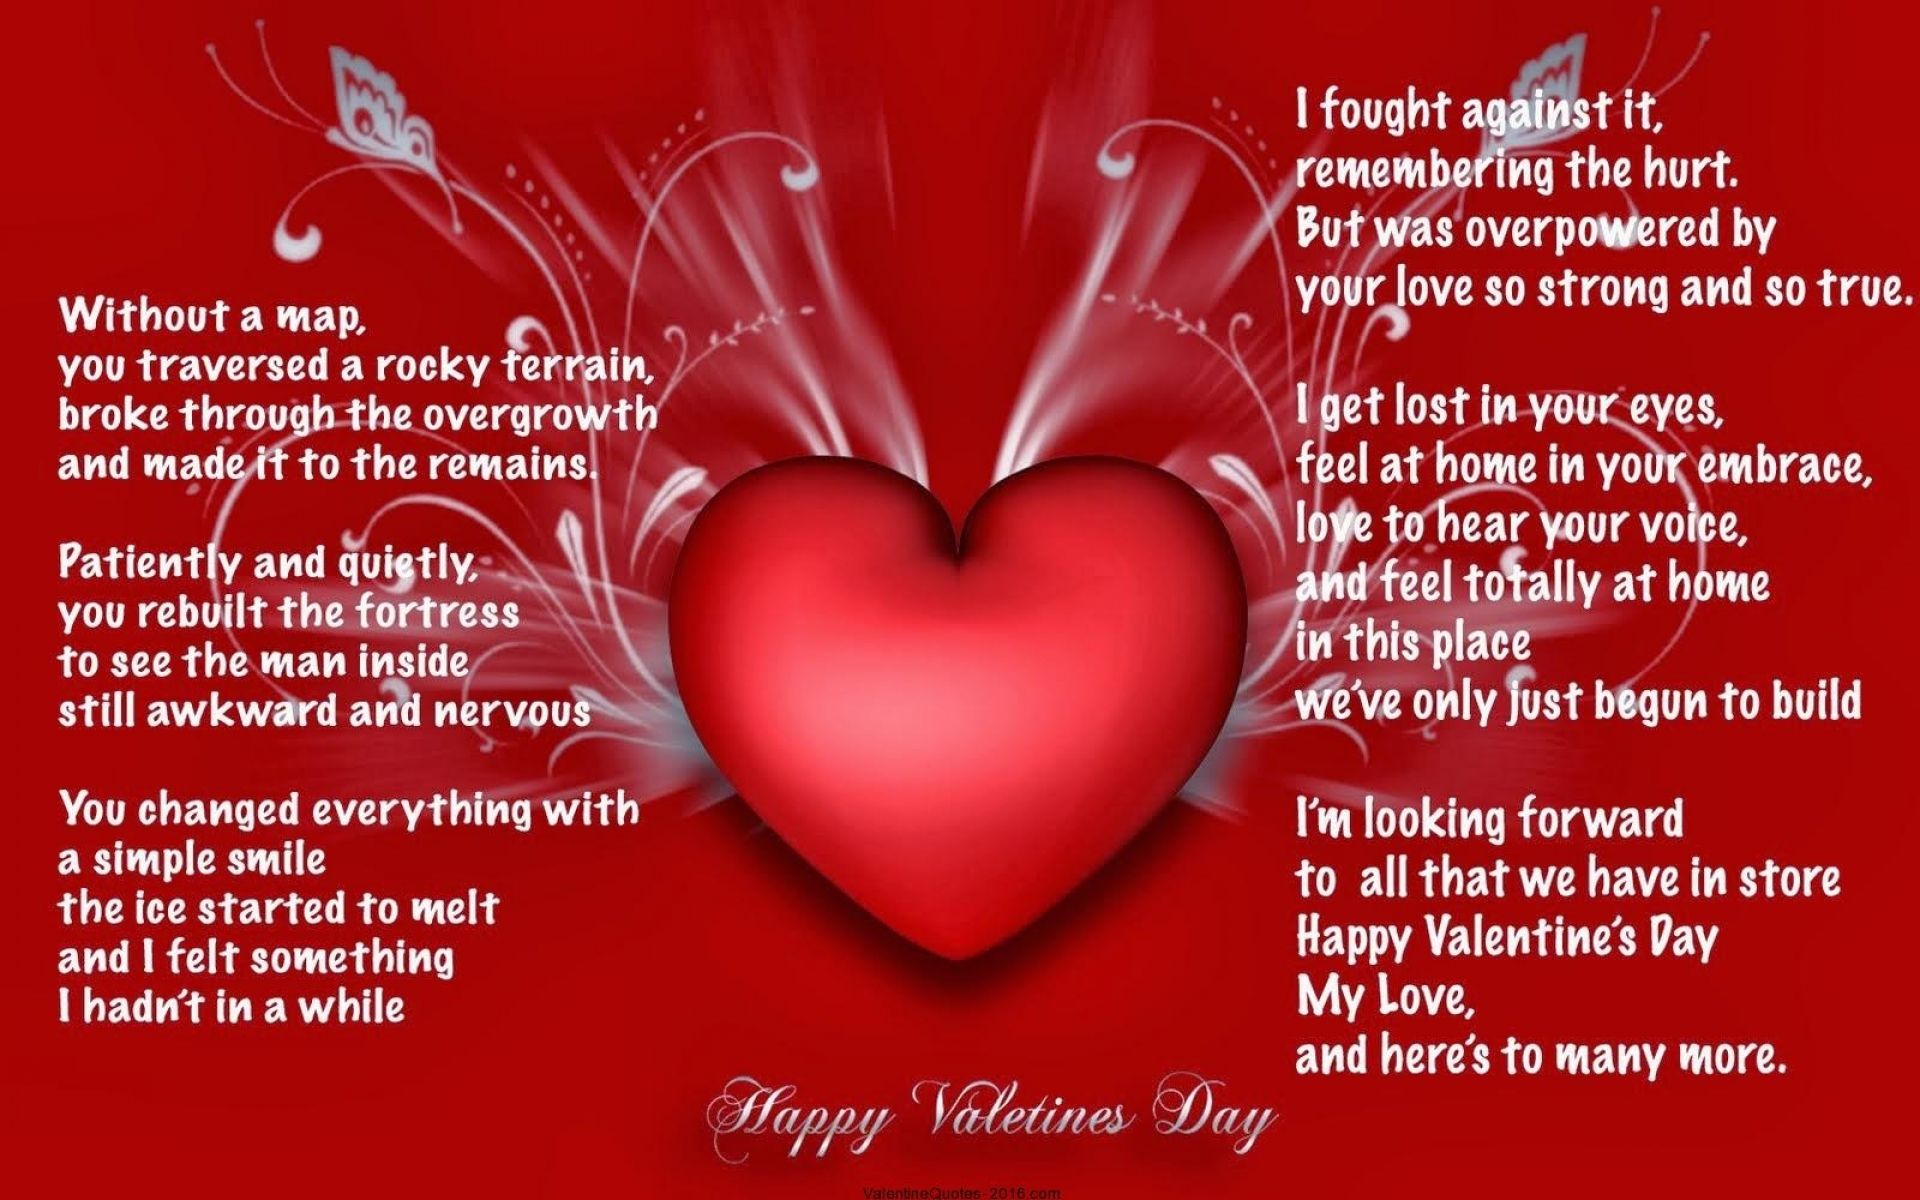 Valentines Day Quotes For Girlfriend Happy Valentines Day My Love Images  Love  Pinterest